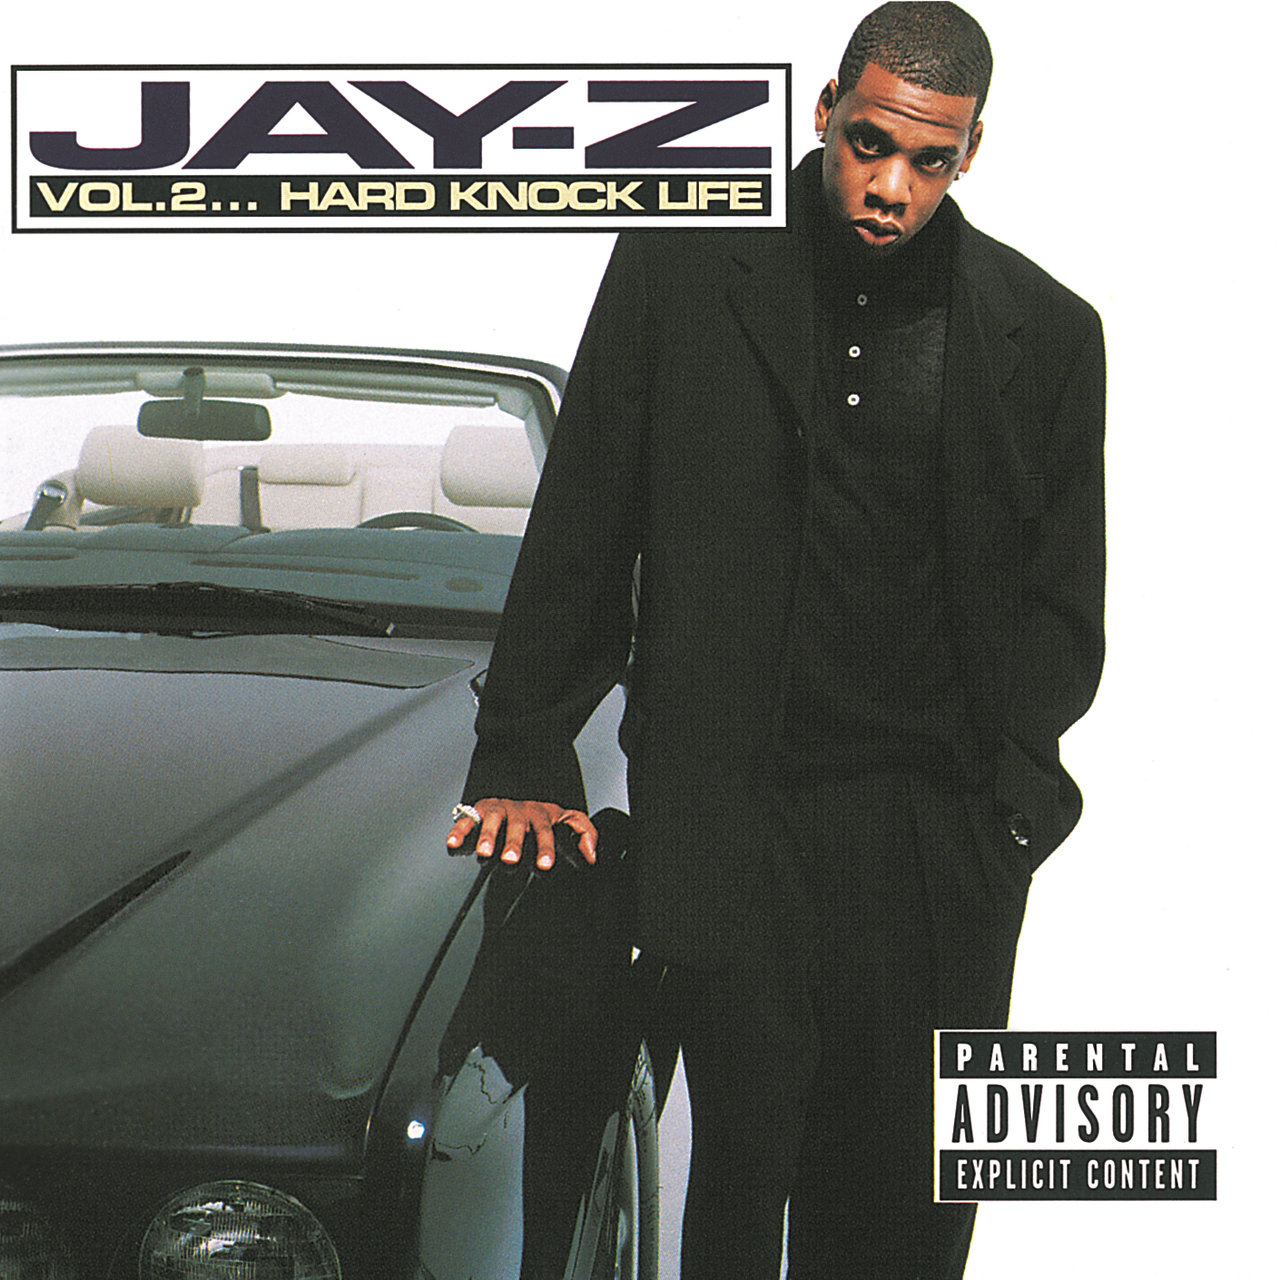 Jay z rocnation 2 hard knock life was released on 9291998 malvernweather Image collections